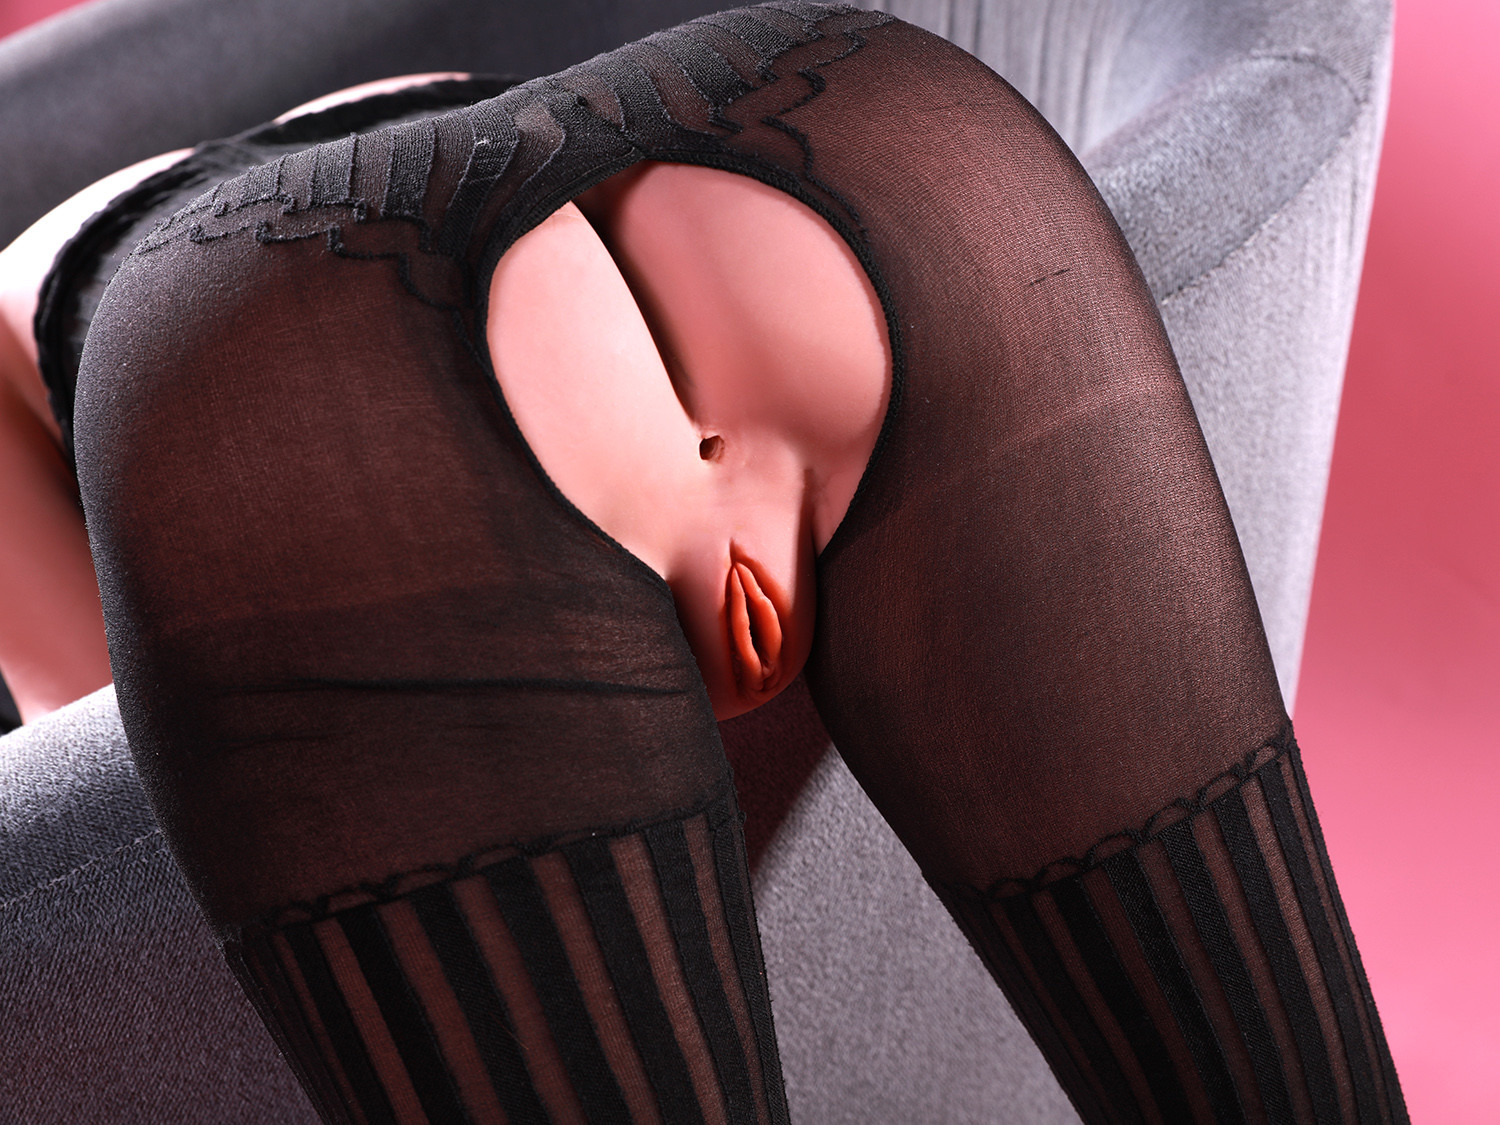 148cm Carol sex doll ass